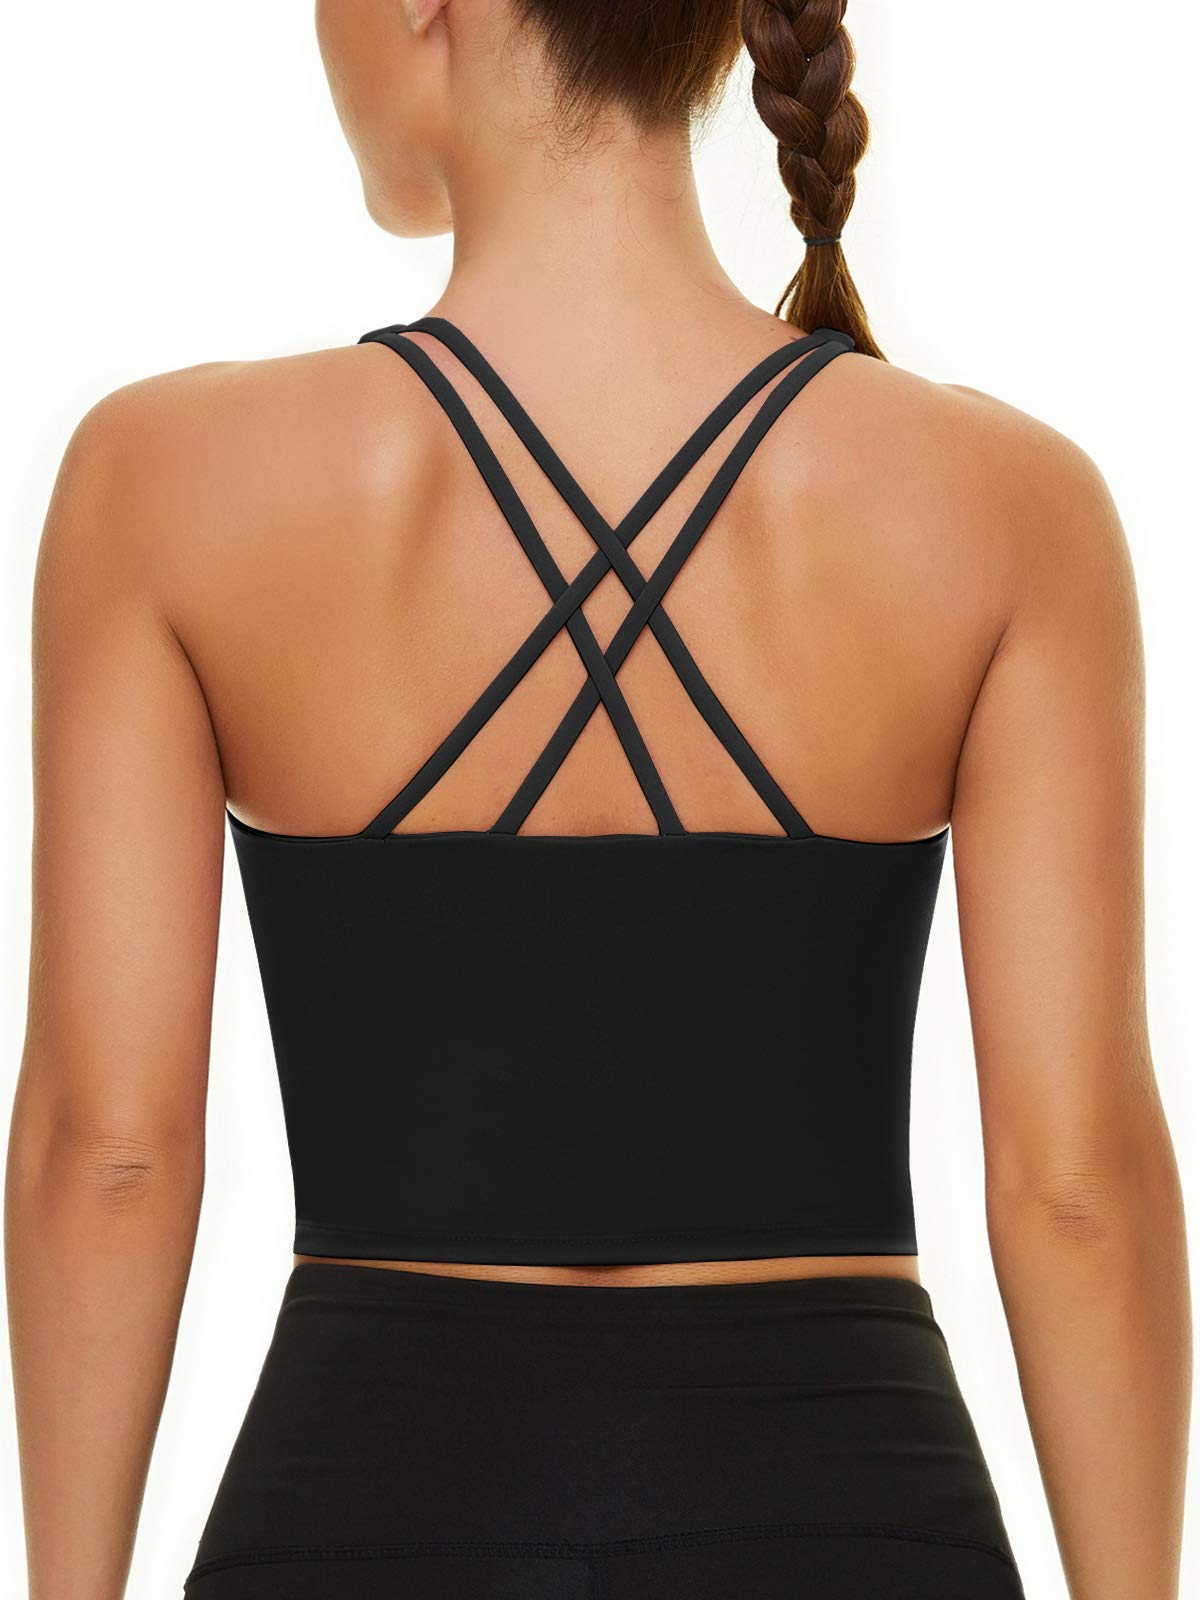 Strappy Sports Bra for Women Longline Crop Tank Tops Yoga Workout Camisole Shirts Built in Bra